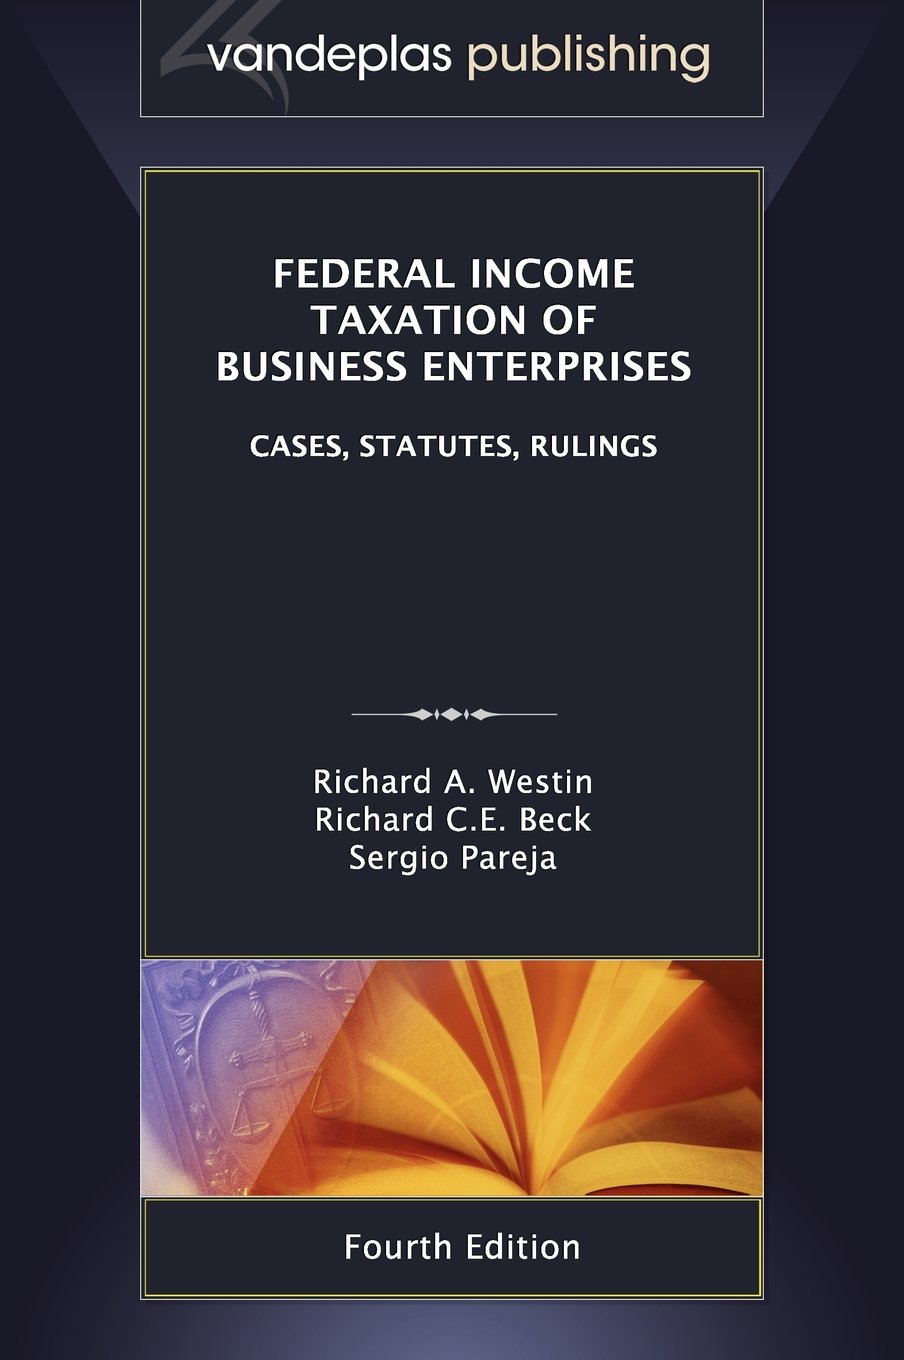 Federal Income Taxation of Business Enterprises: Cases, Statutes, Rulings, 4th. Edition 2012